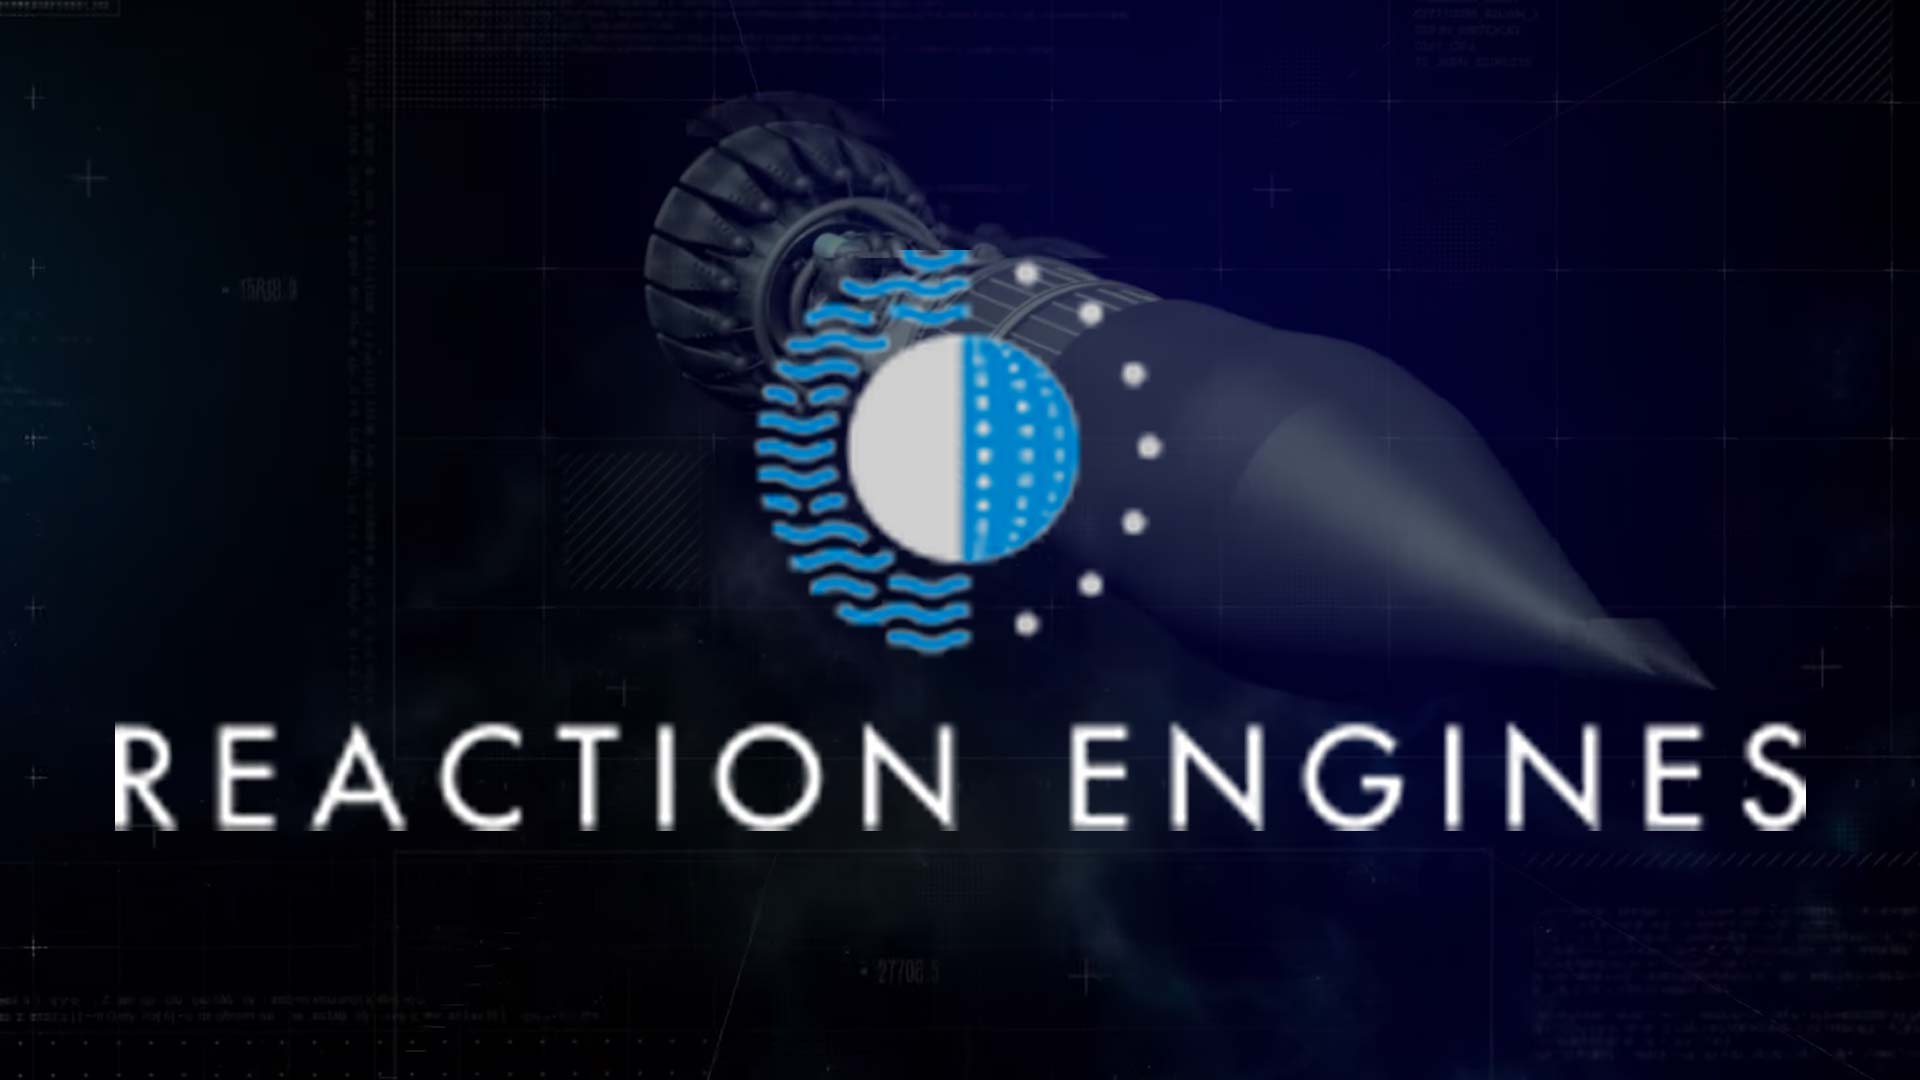 Reaction Engines Space Organisation Partner